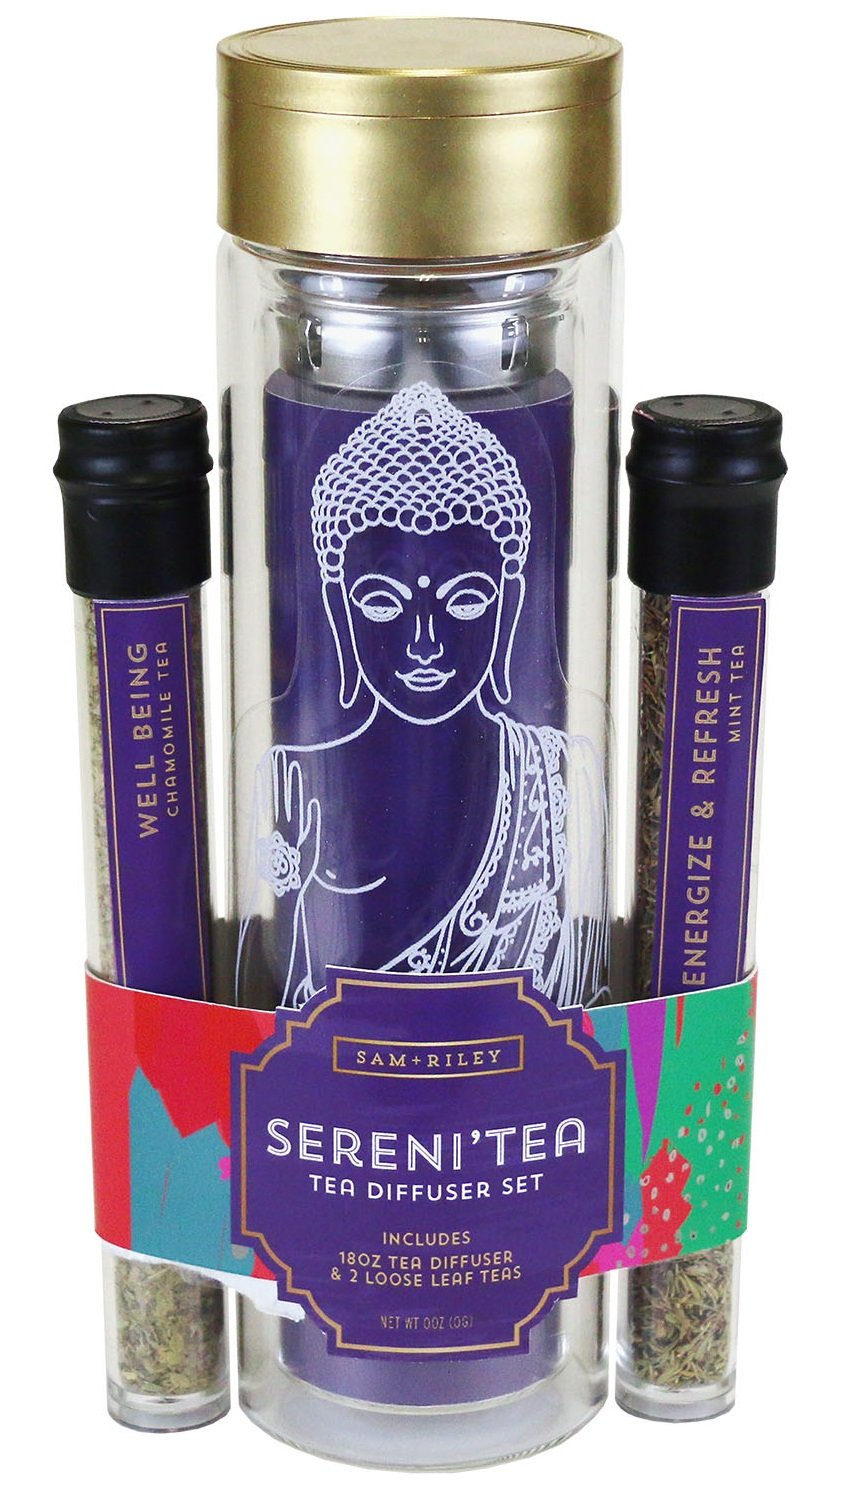 ''Sereni'Tea'' Tea Infuser Gift Set | Tea Infuser Kit with Mint and Camomile Loose Leaf Teas